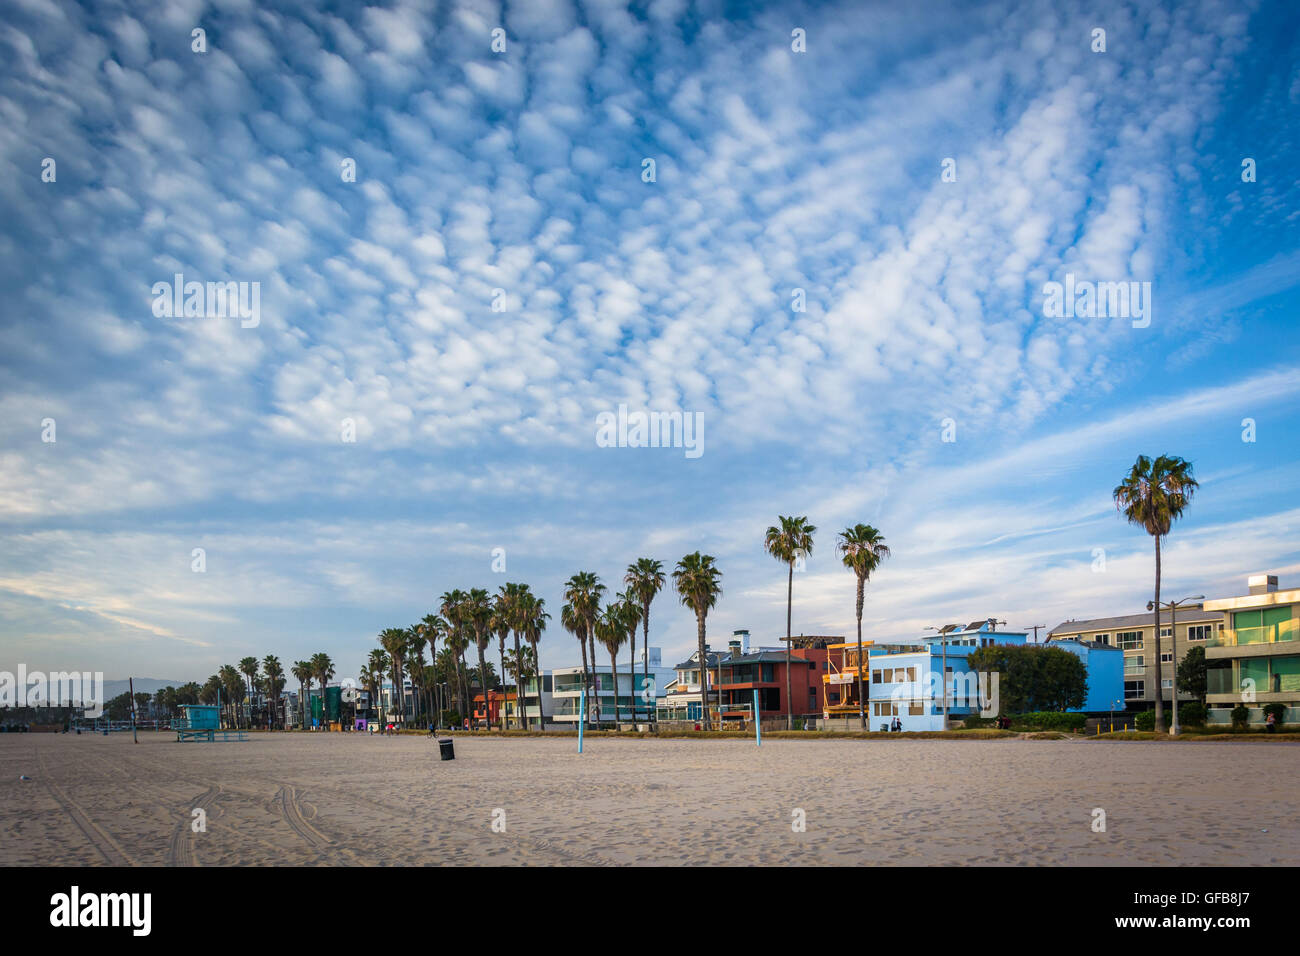 Palm trees and houses along the beach, in Venice Beach, Los Angeles, California. - Stock Image